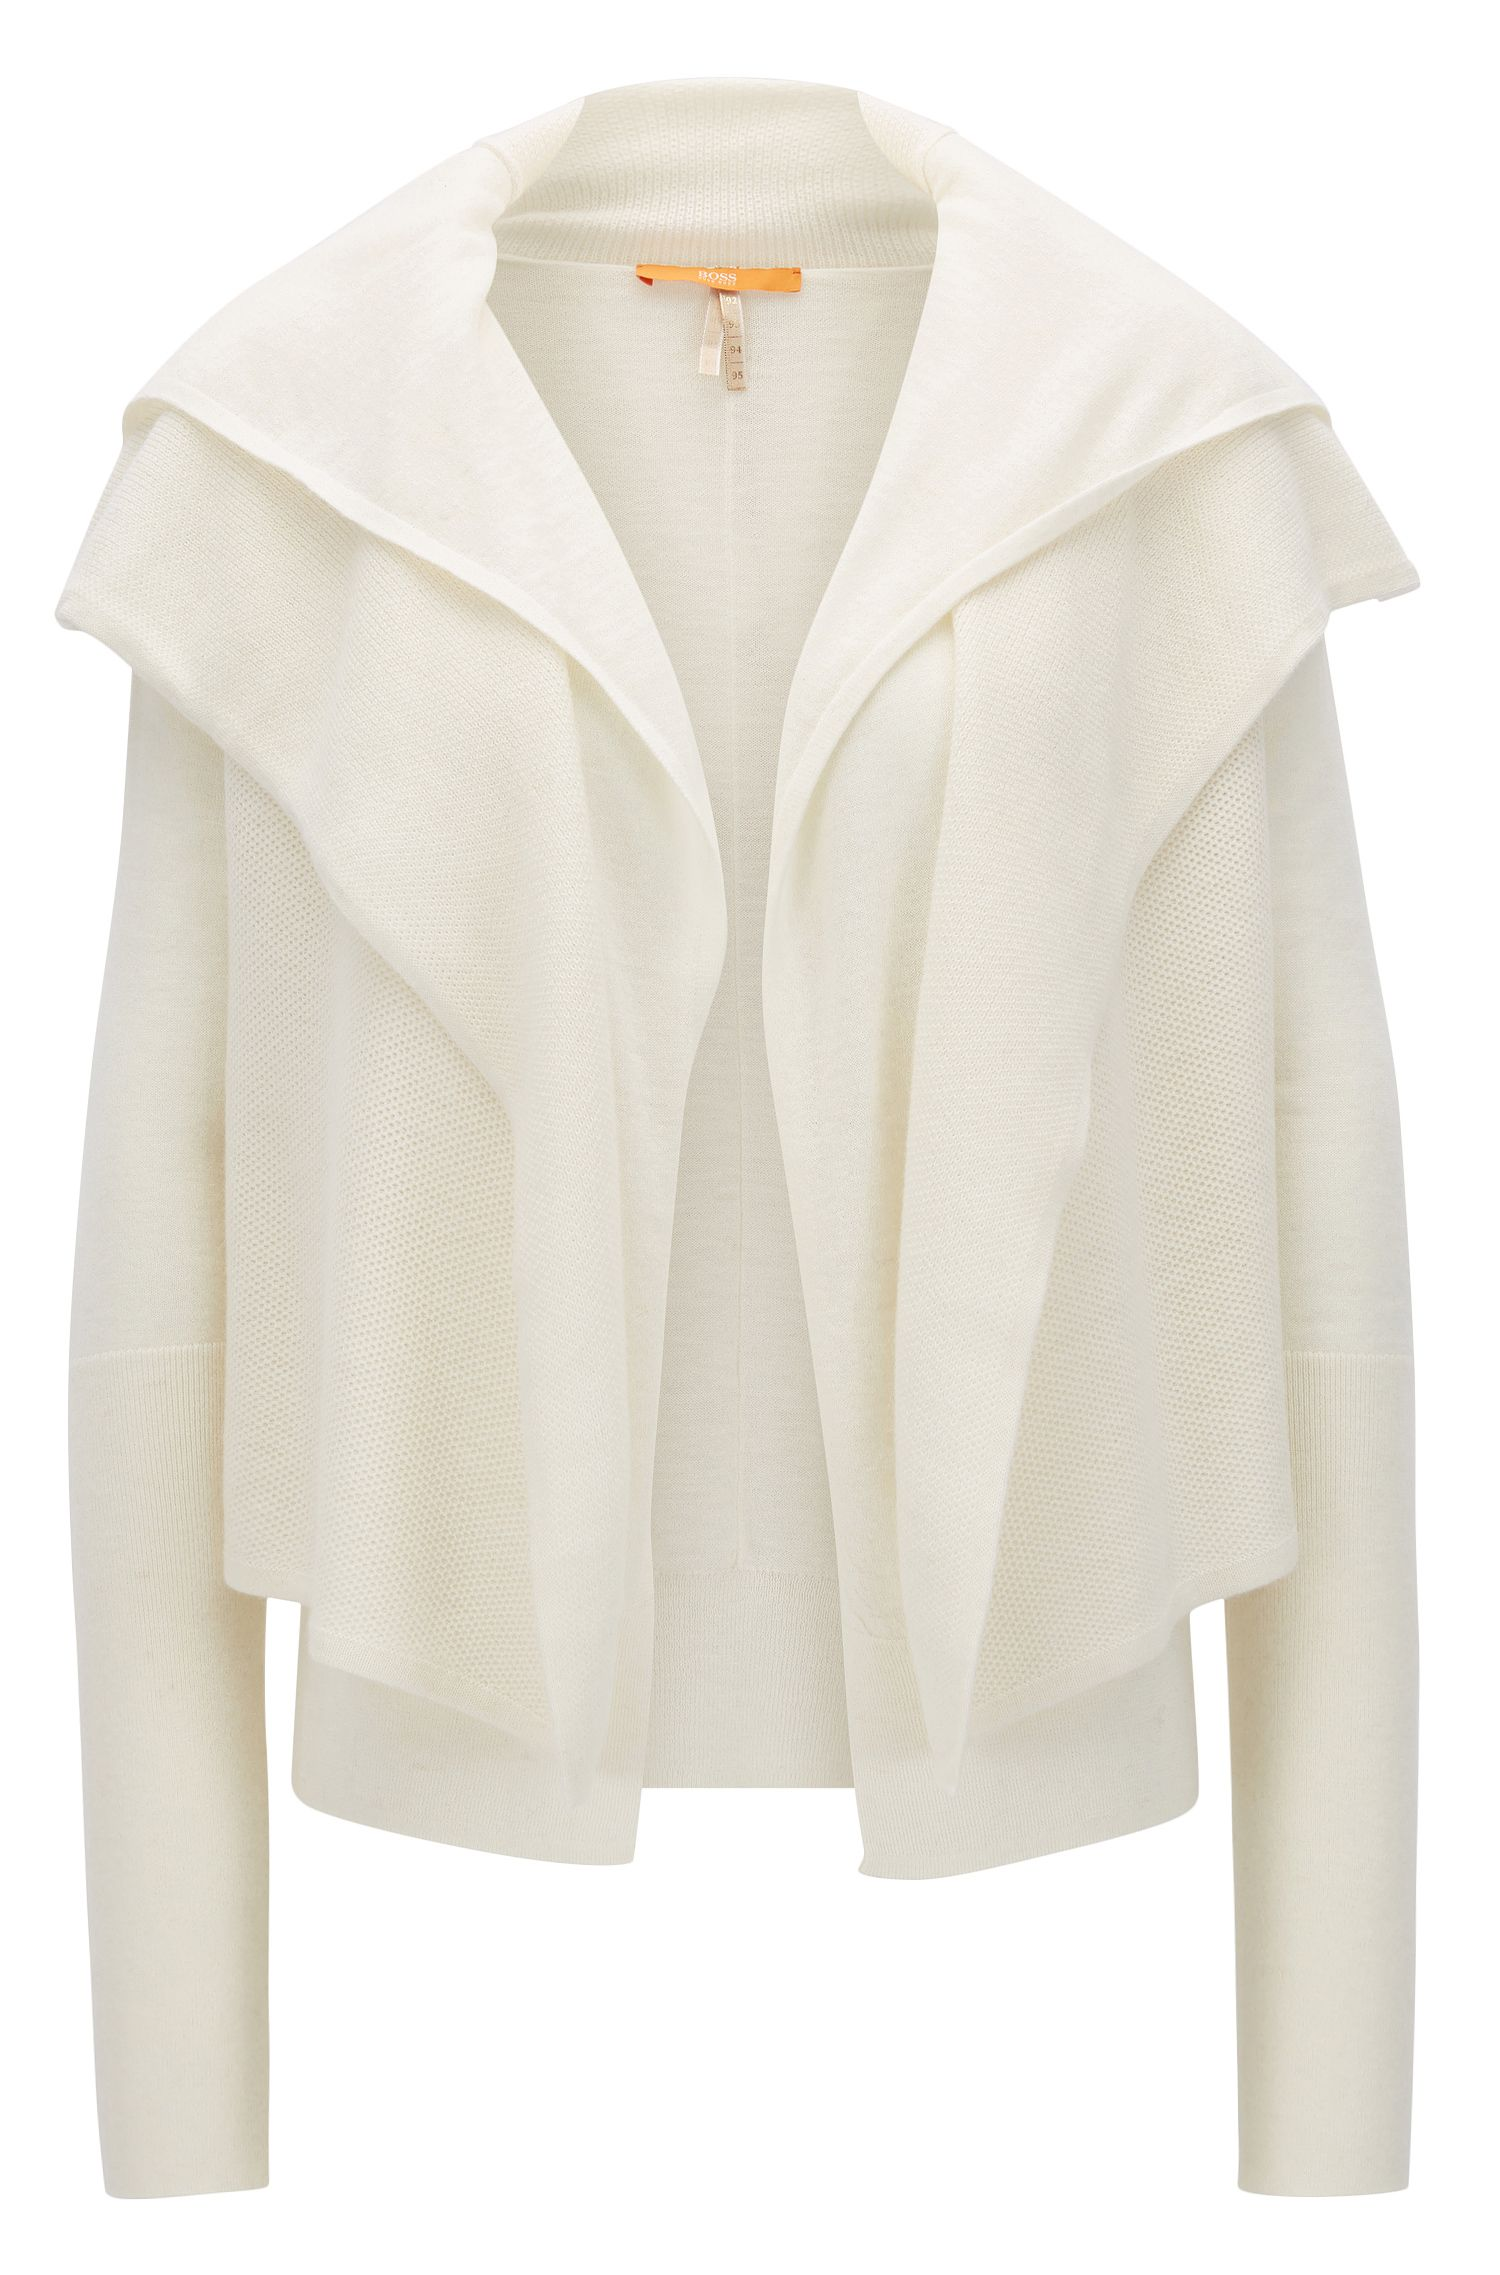 Double-fronted cardigan in structured fabric